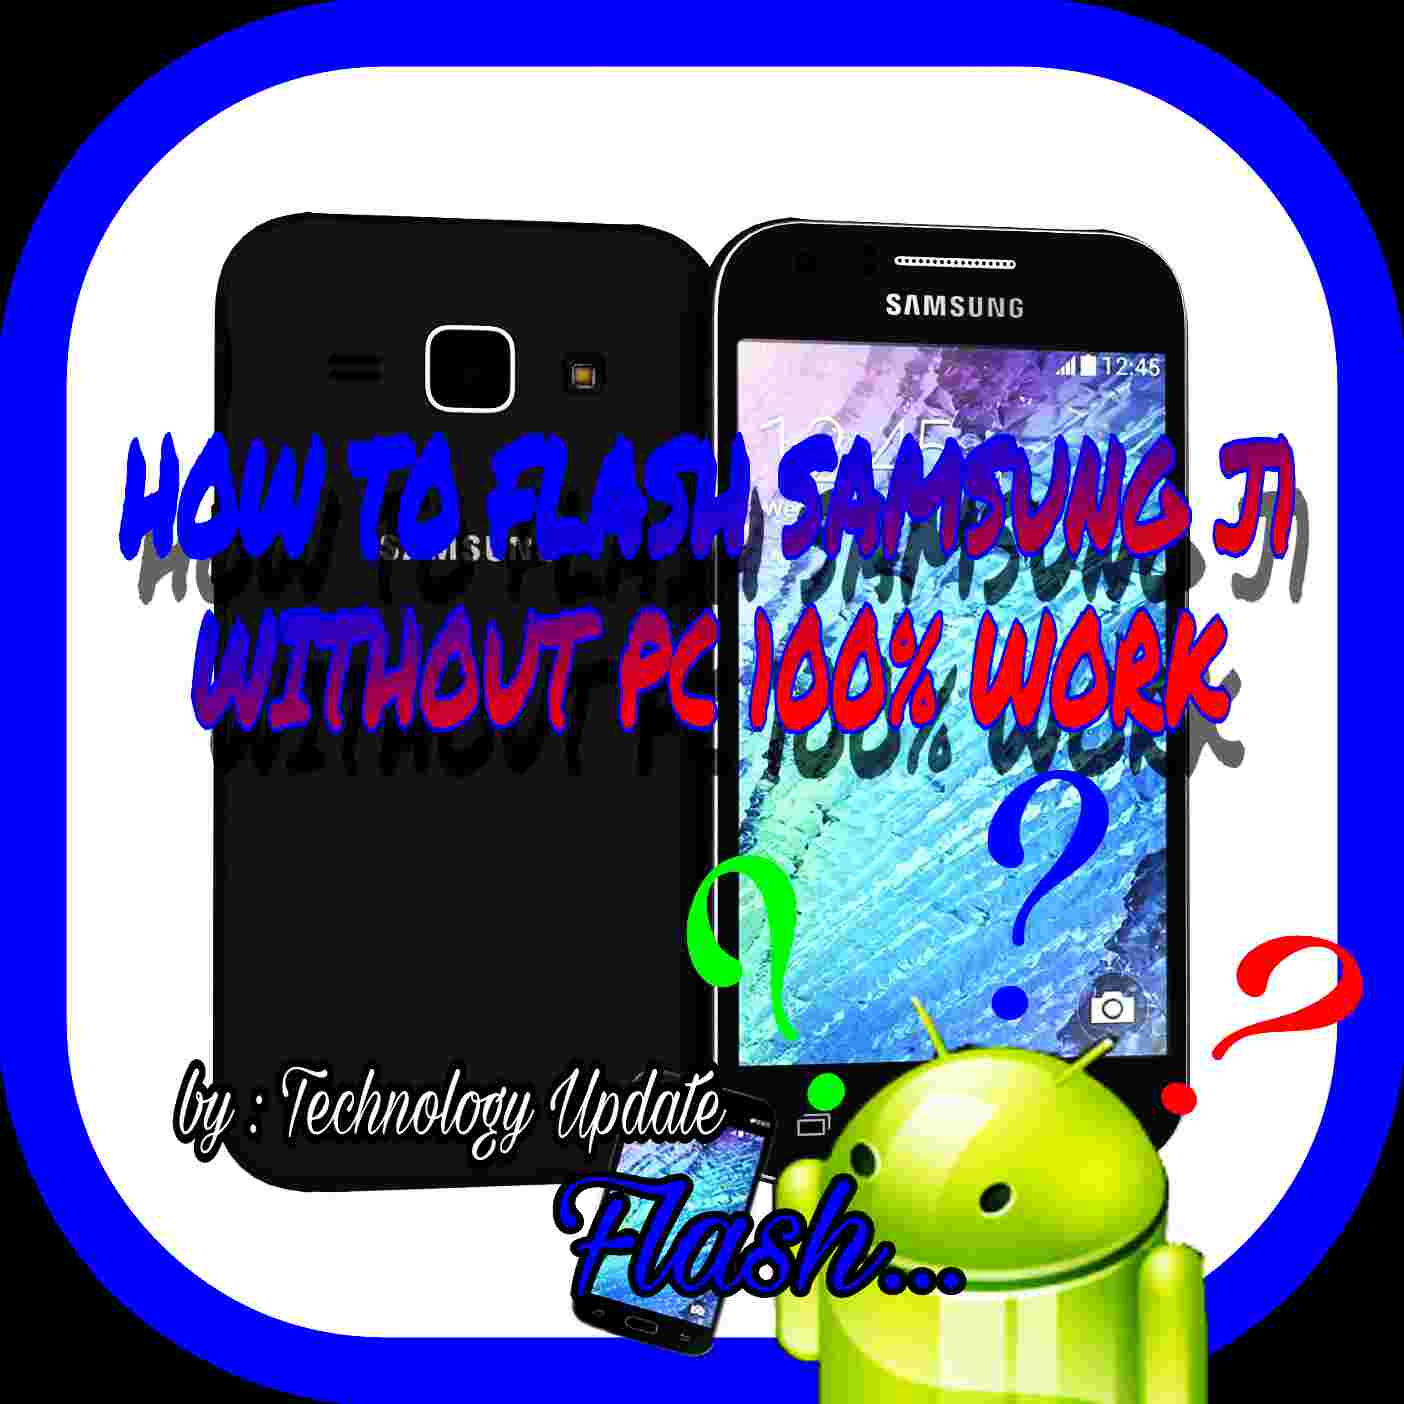 Samsung J1 Ace 4g Flash File